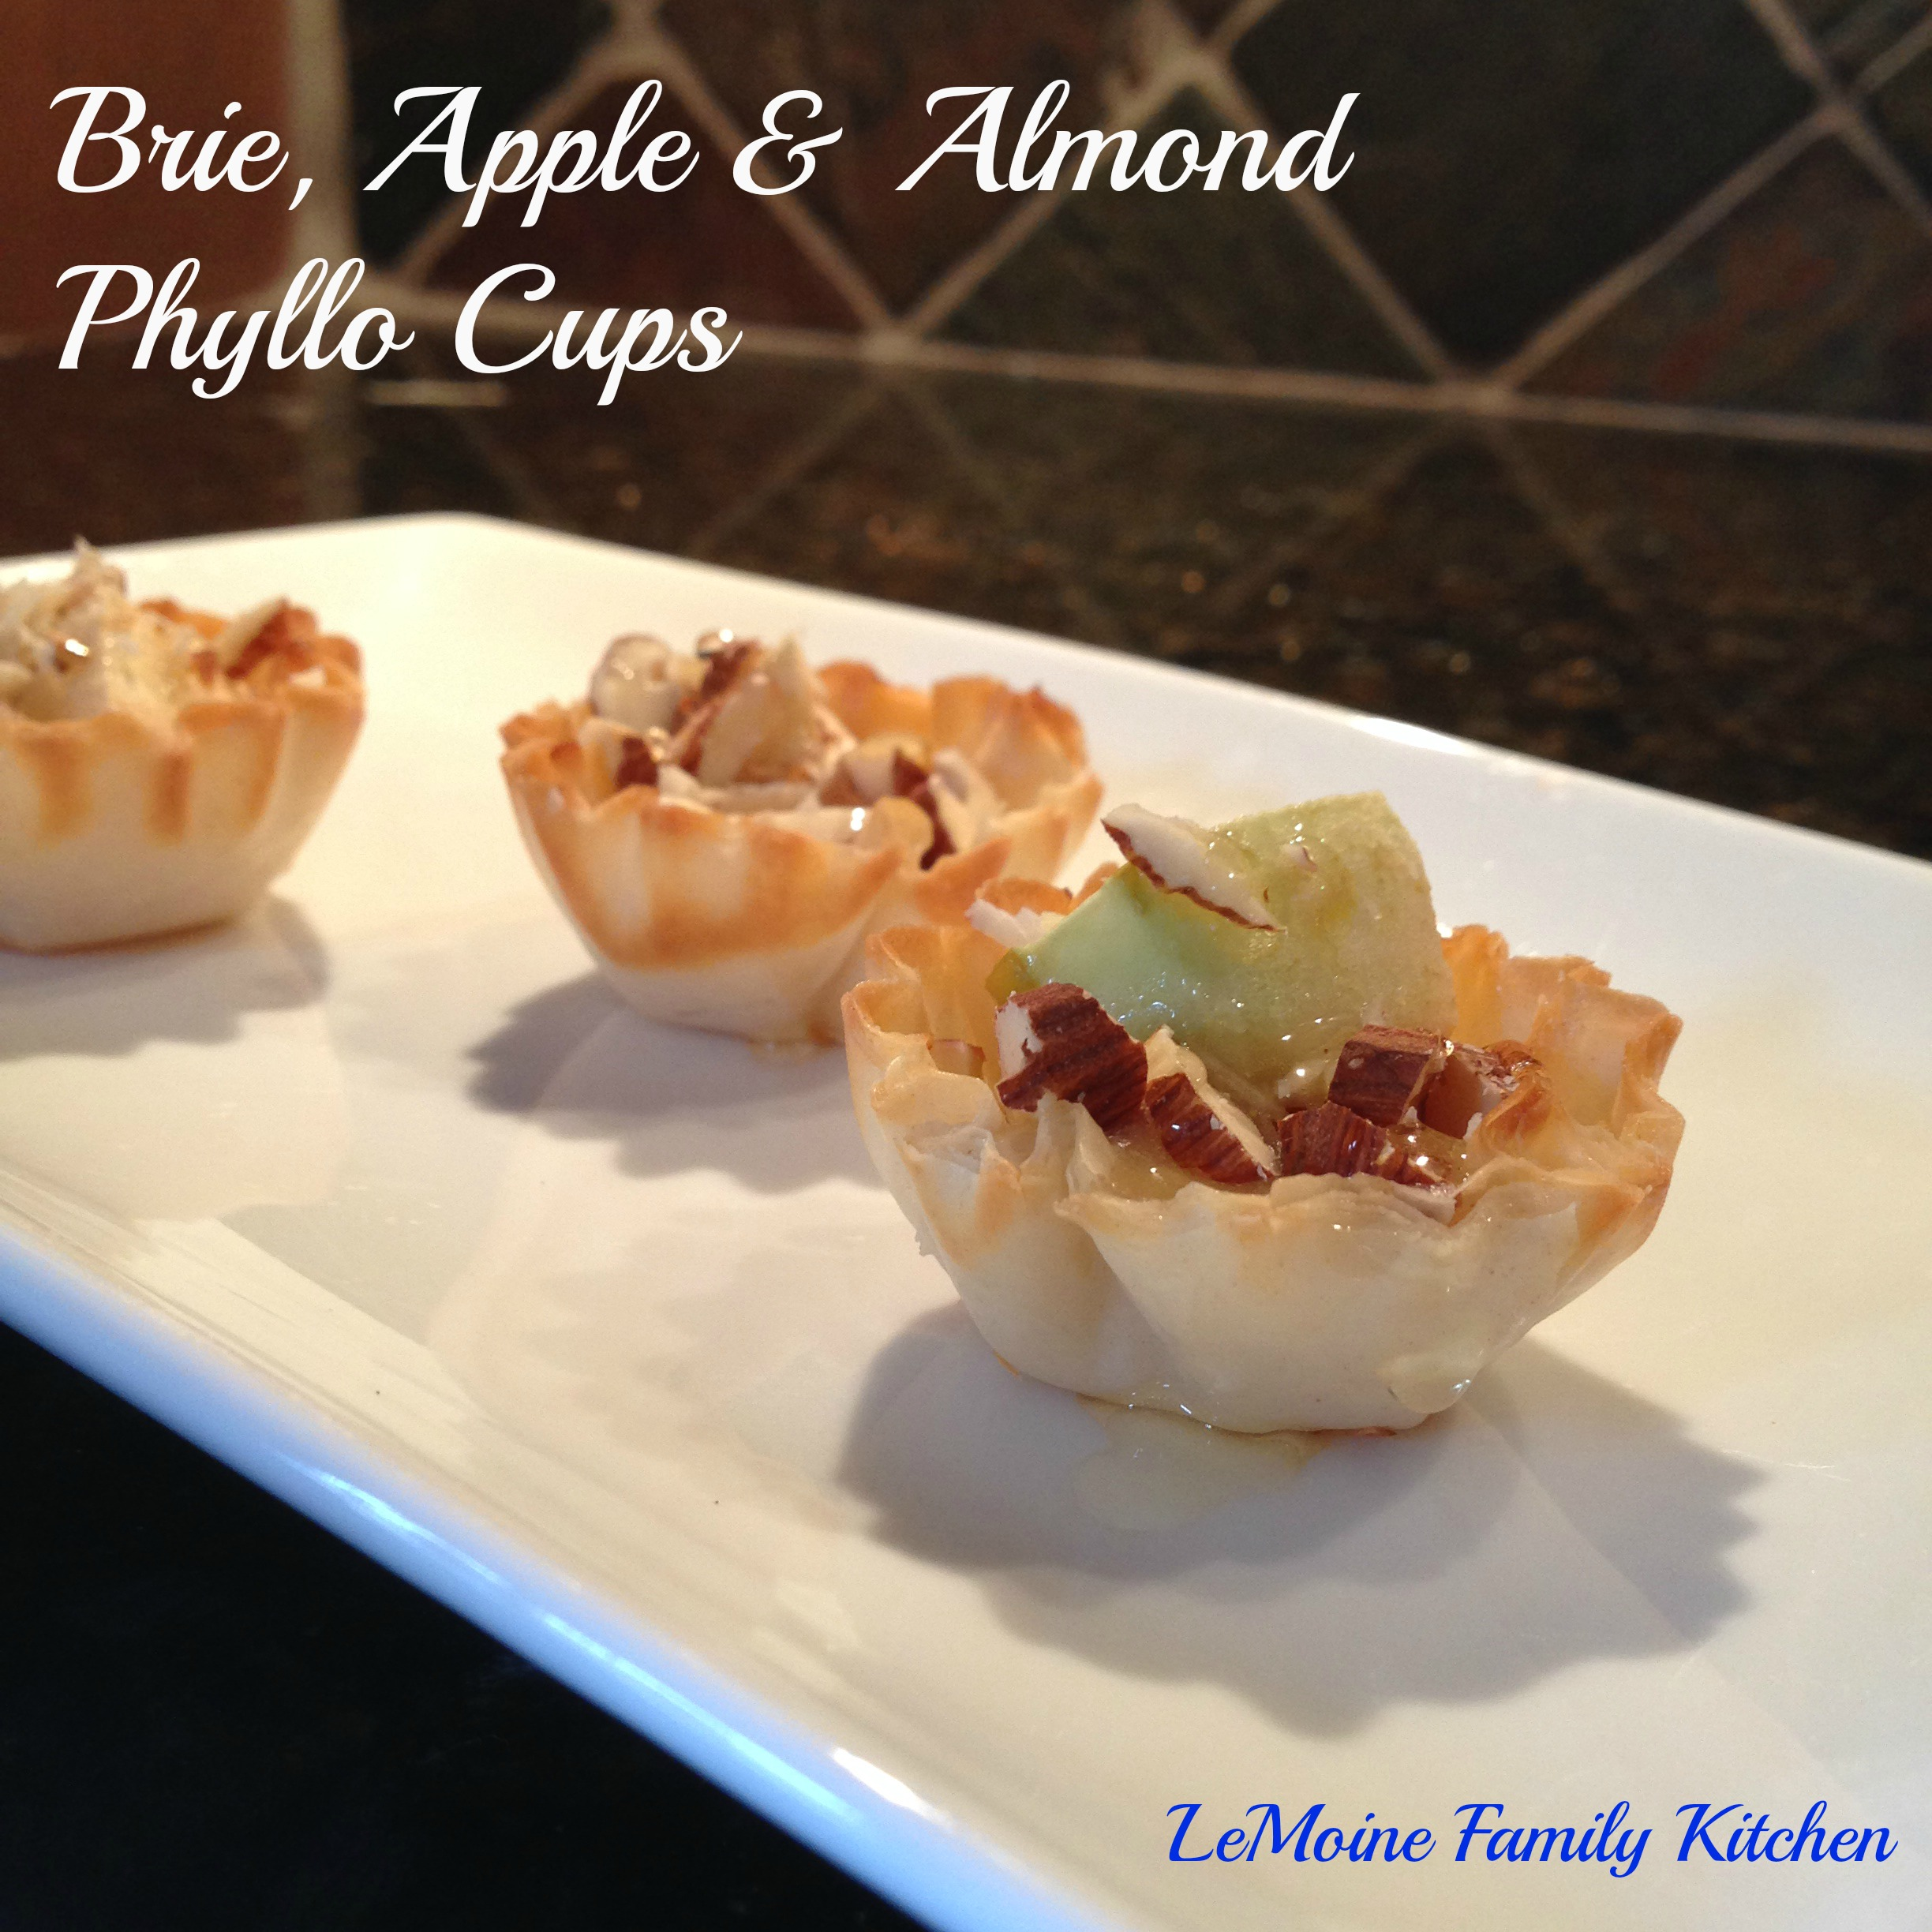 brie, apple, almond phyllo cups